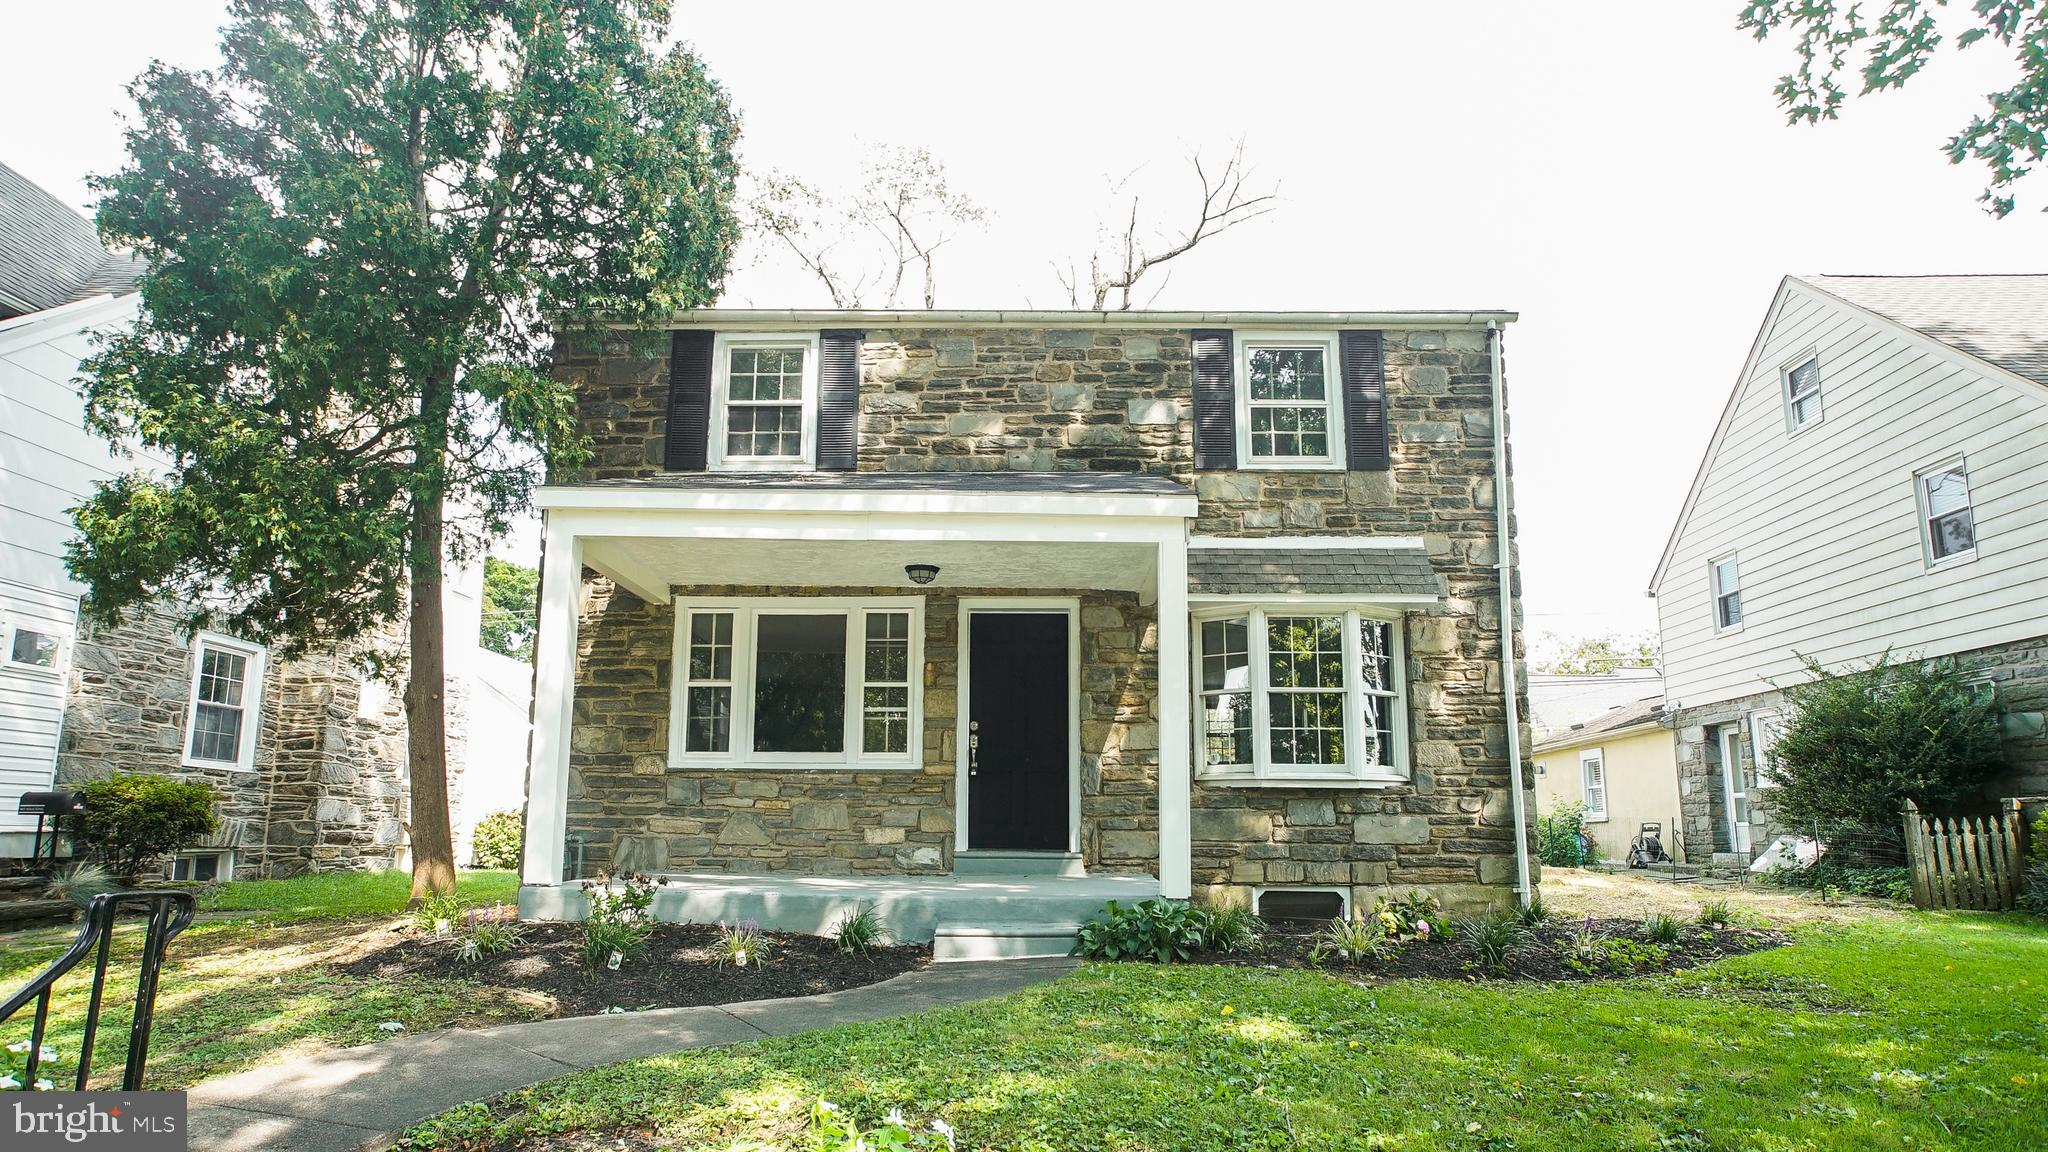 Have you dreamed of living in Lower Merion School District but haven't had the right opportunity? Now's your chance! Come check out this recently renovated 3 bed, 2.5 bath home waiting for you! This stone gem, located on a quiet street, greets you with plenty of curb appeal and fresh landscaping. Walking up onto the concrete porch, you are sure to envision drinking your morning coffee here! Heading through the front door, you enter the living room brimming with tons of natural light. There is also a fireplace, and beautiful hardwood floors and recessed lighting throughout. Through the living room, there is a sitting room, with plenty of storage and a large, picturesque window. To the right of the living room is a formal dining room, complete with hardwood floors and a large bay window. Heading into the generously sized kitchen, with granite countertops, there are endless storage possibilities, counter space, and tile flooring. There is also access to the backyard, including a driveway. The first floor also features a half bathroom. There is also additional space, with a half finished basement, and full bathroom. Heading up to the second level, there is a large master bedroom, and 2 other spacious bedrooms, along with a full sized hall bath.  There is also a 300 sq ft basement, perfect for storage, or to create into a finished project! The hot water heater is also only 2 years old. Located close to City Ave and all it's shopping and dining amenities, what more could you want! Check this out today before it's gone!